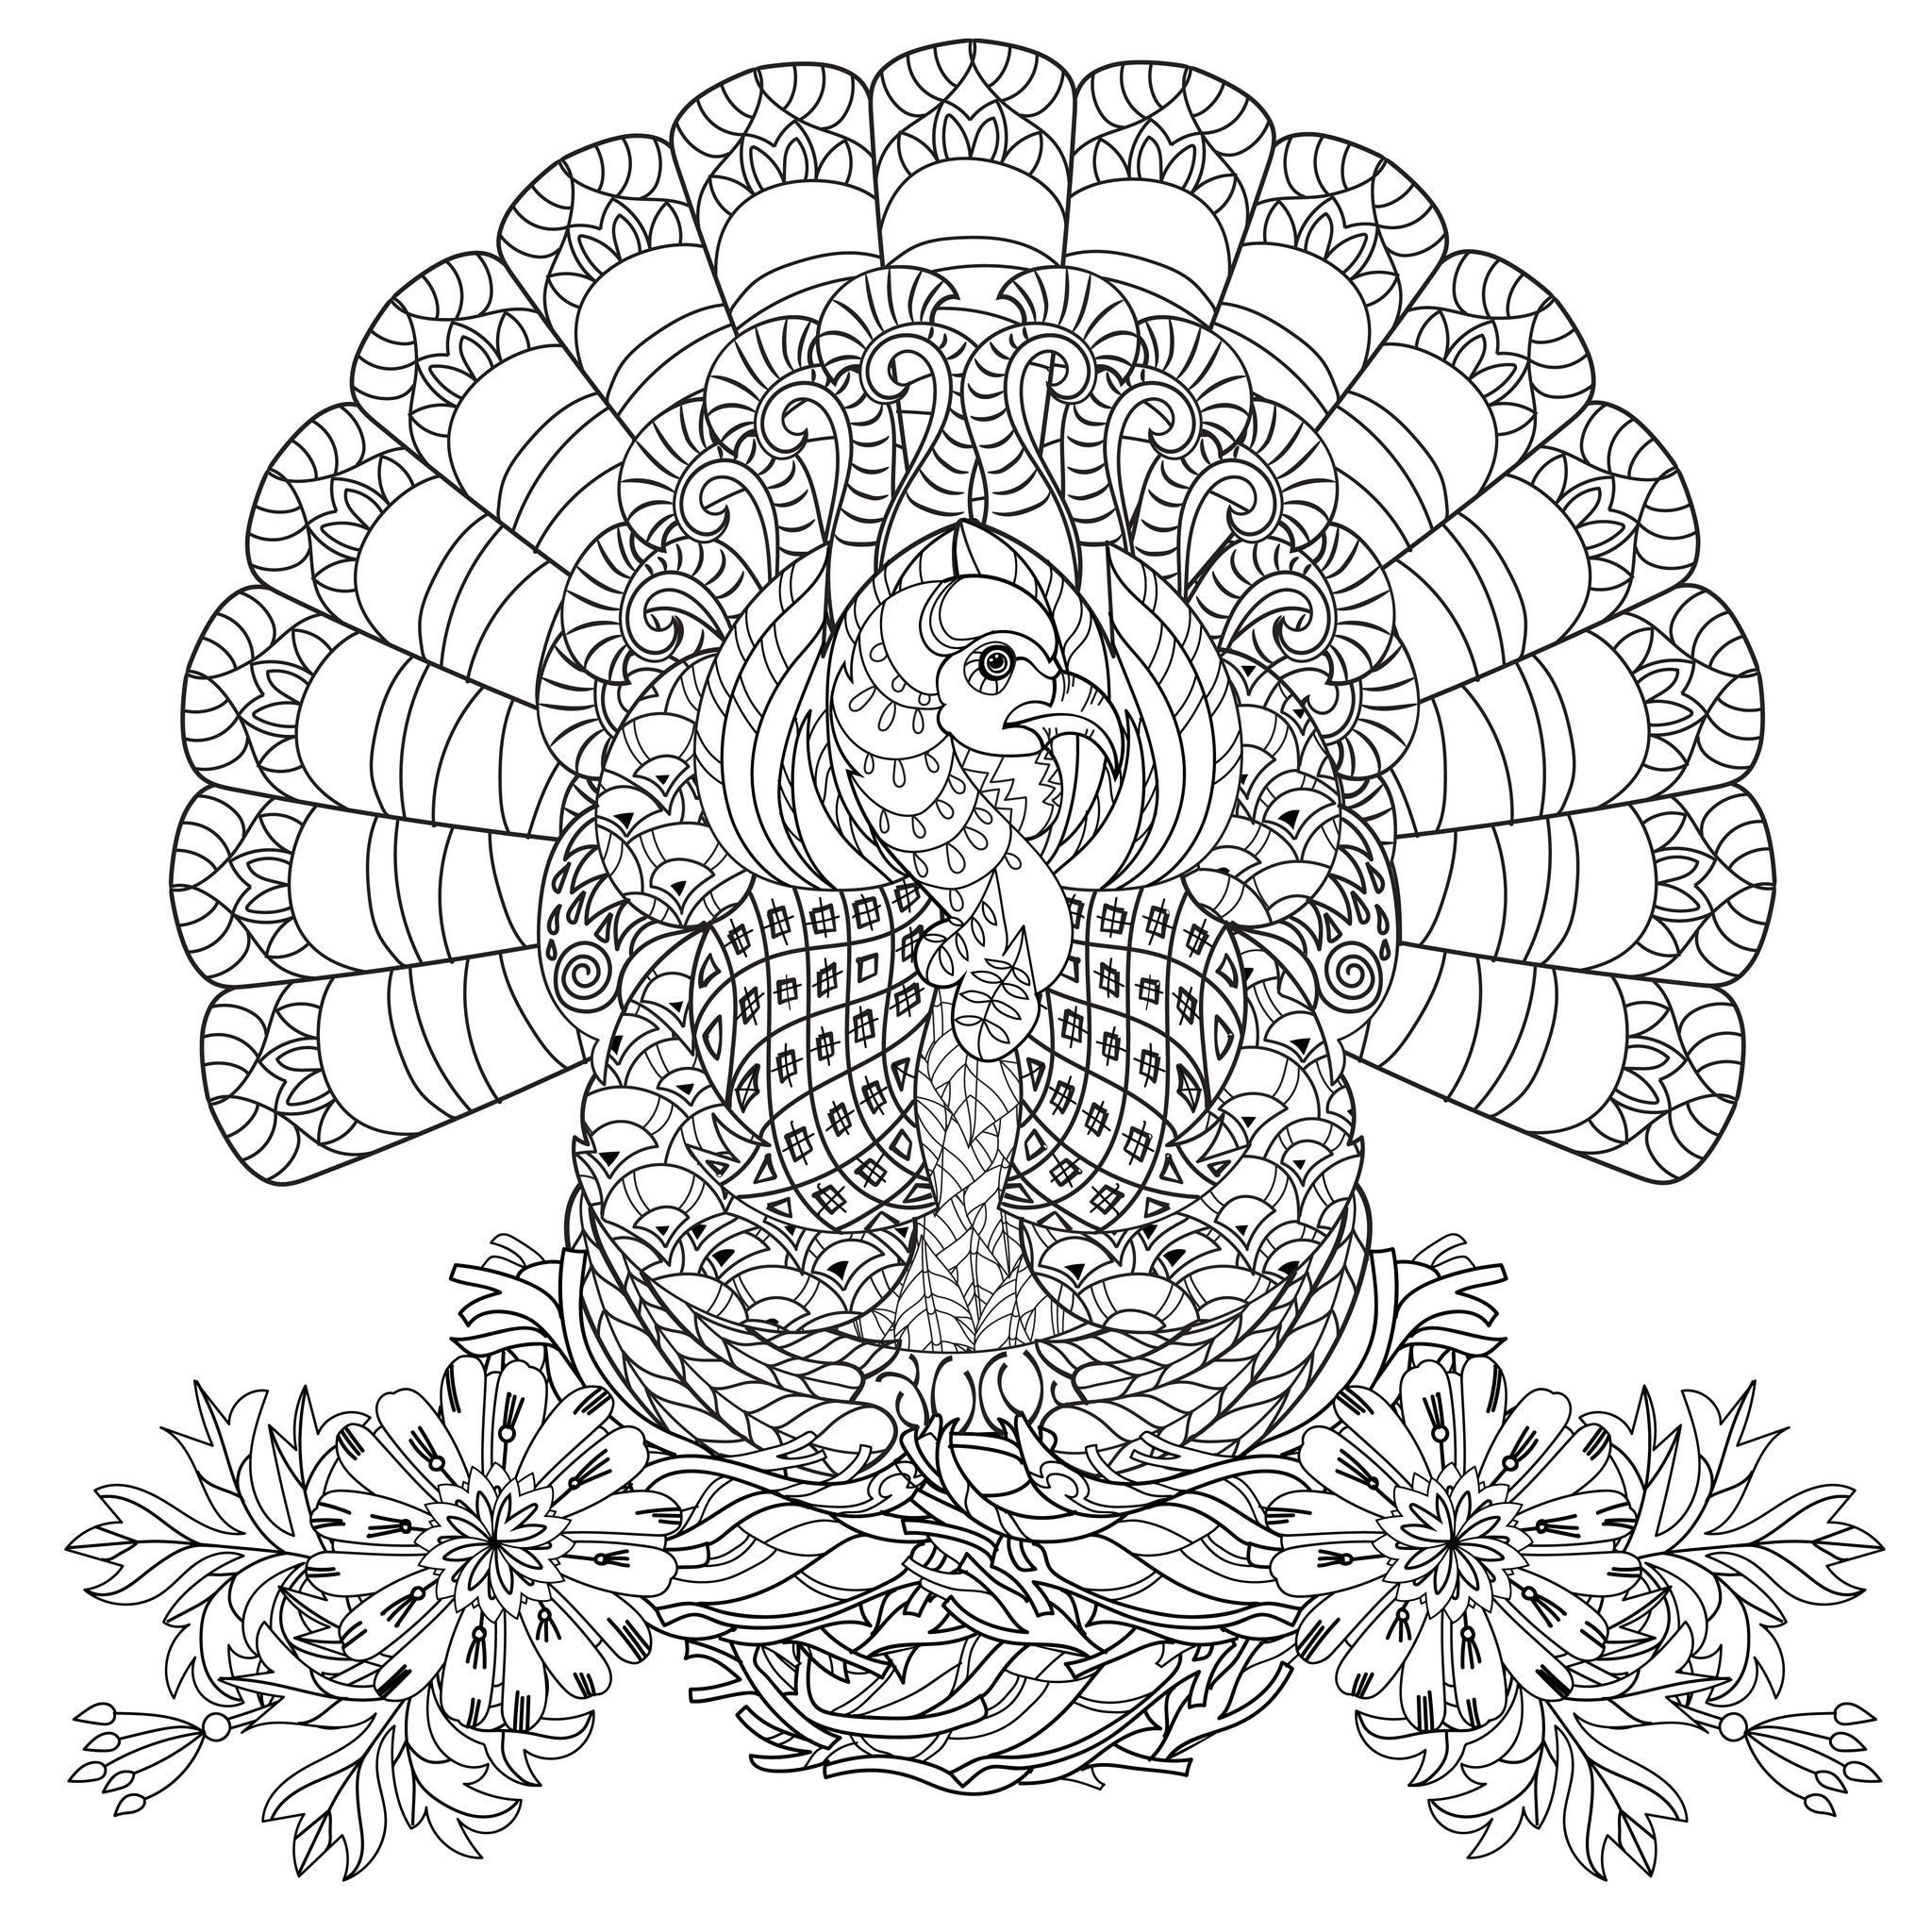 Best Website For Free Coloring Pages : Thanksgiving Coloring Pages For Adults to download and print for free